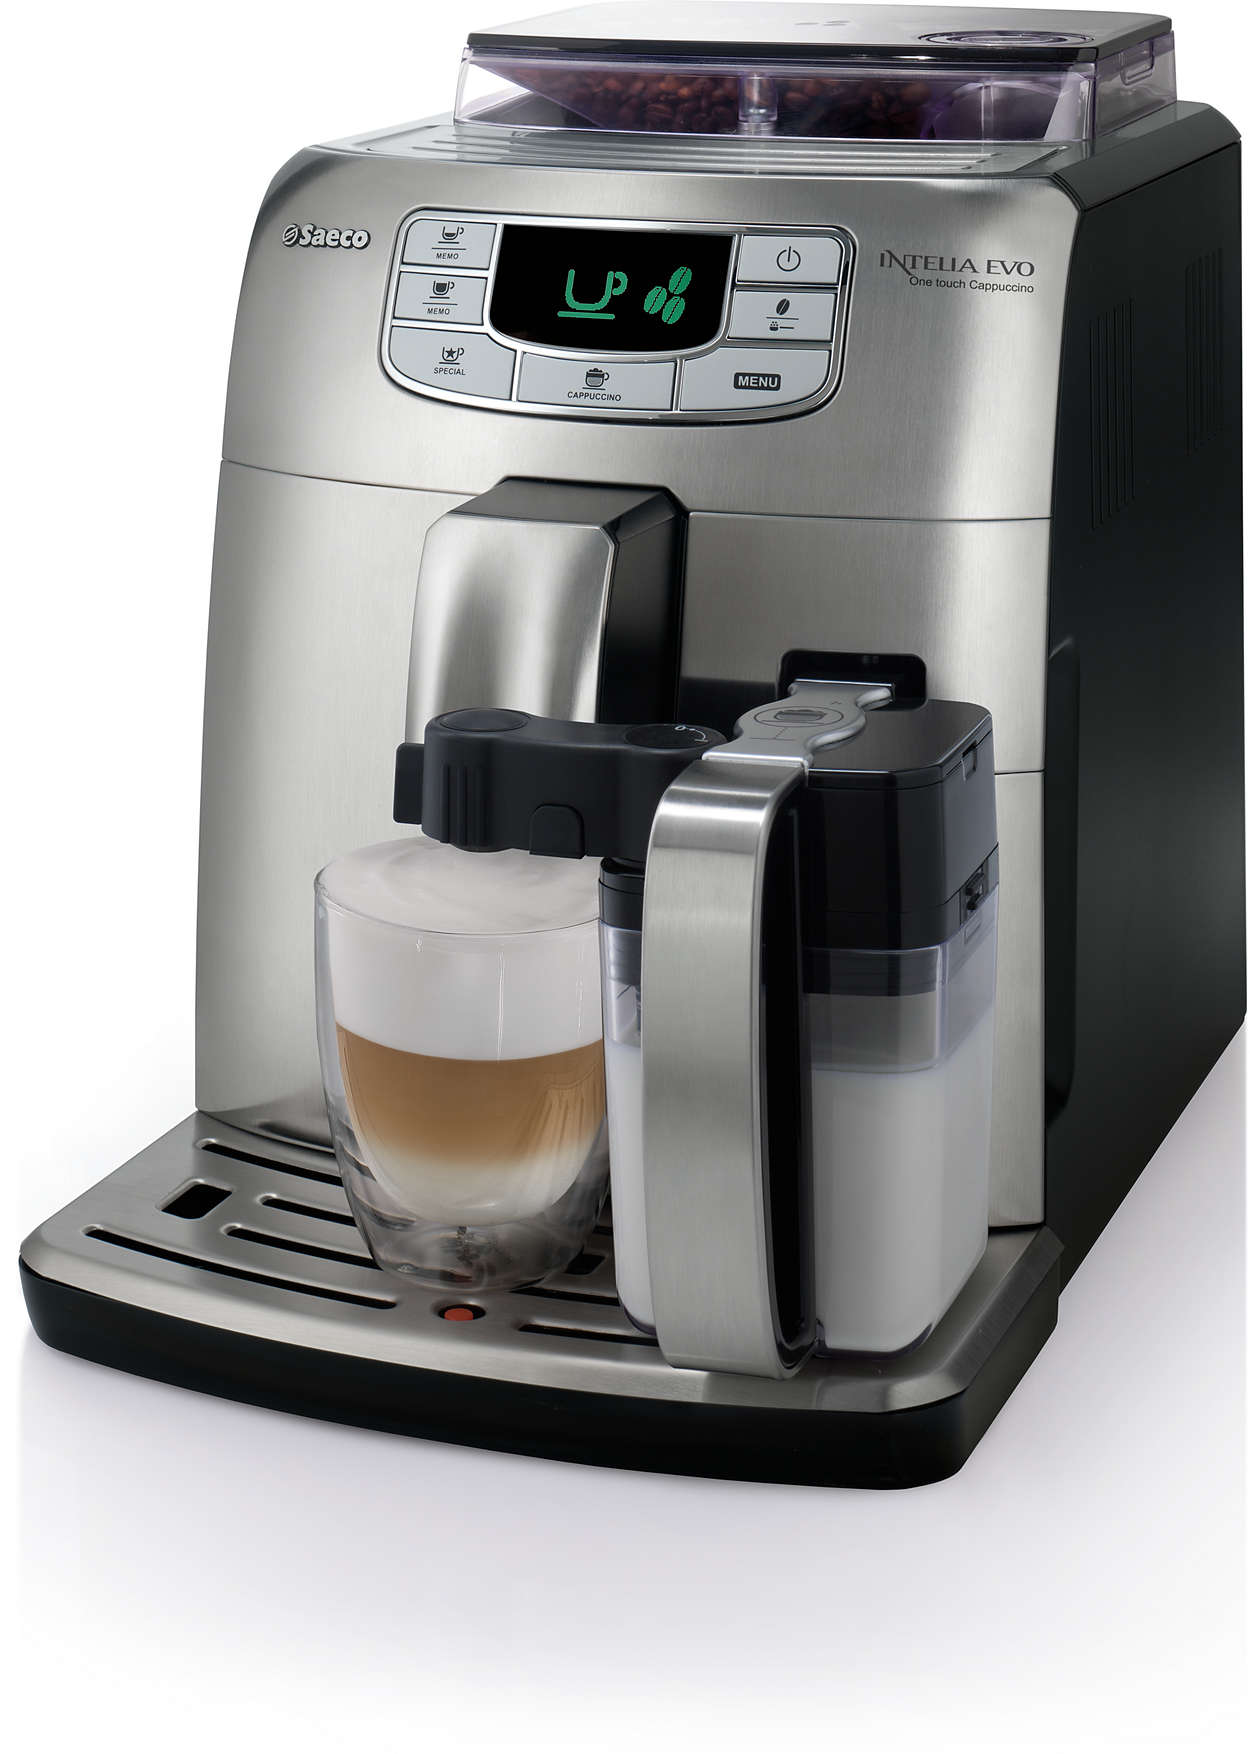 intelia evo super automatic espresso machine hd8753 92 saeco. Black Bedroom Furniture Sets. Home Design Ideas